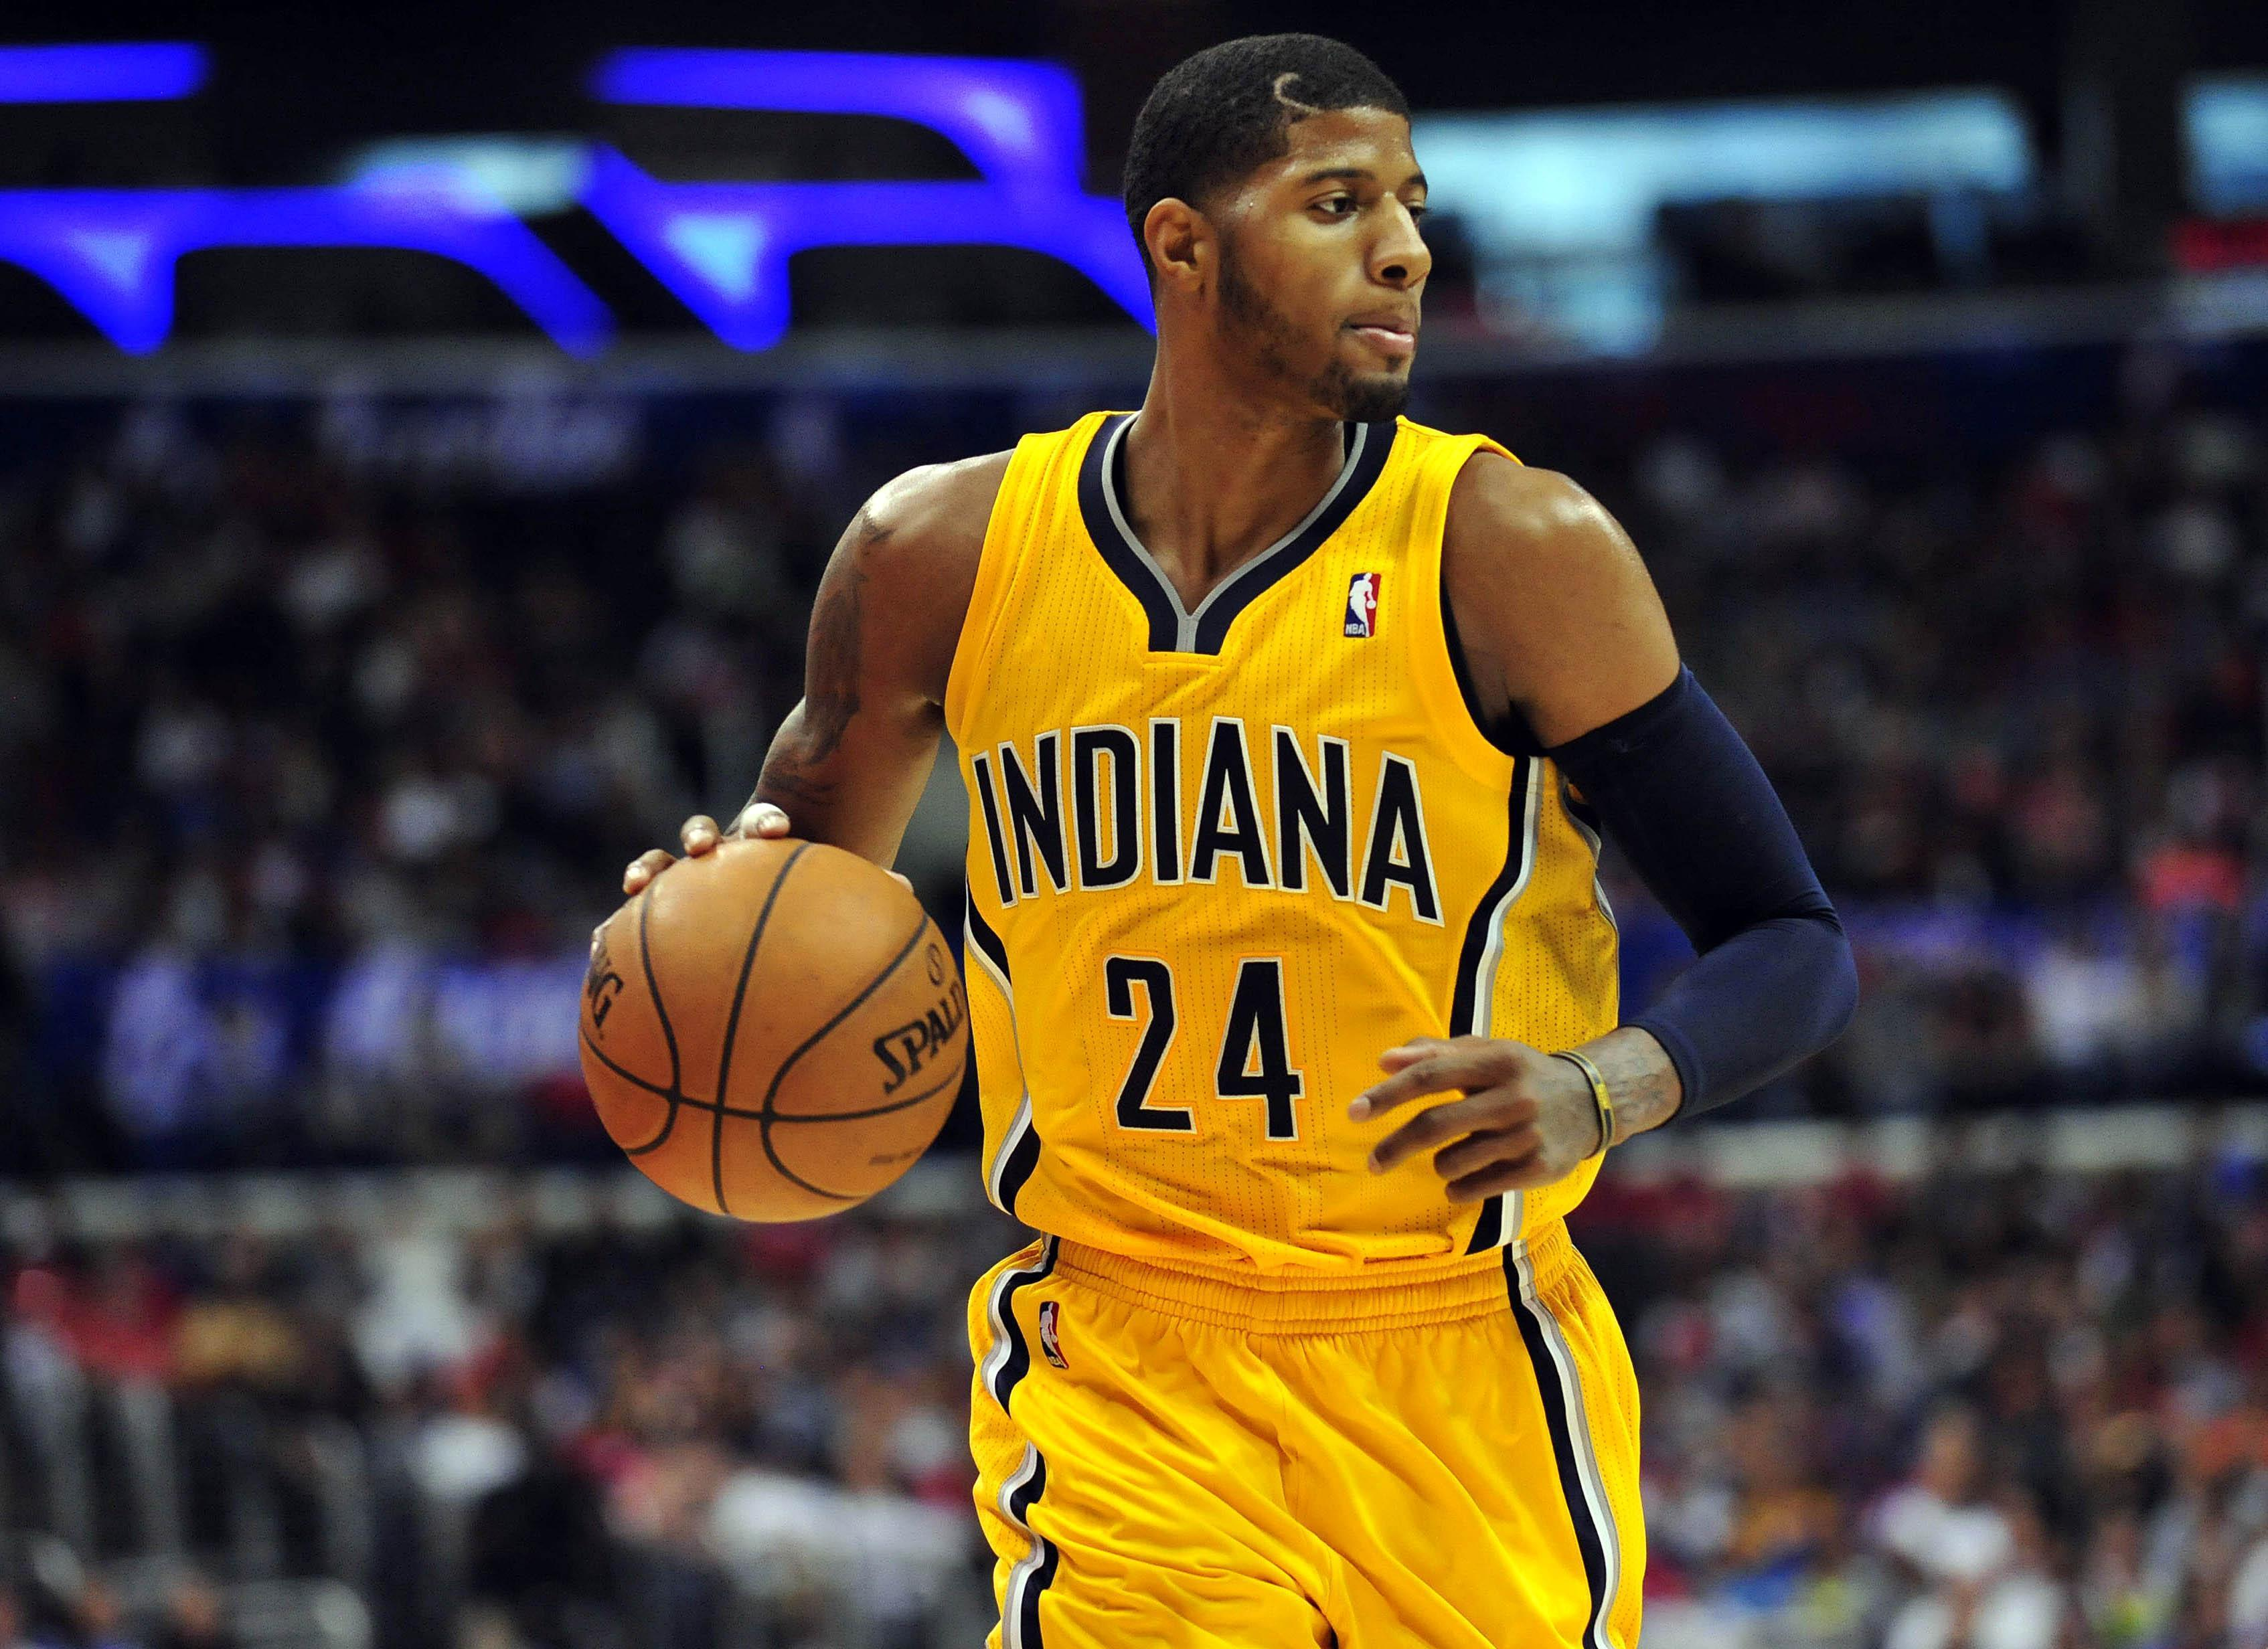 Indiana Pacers Paul George Wallpaper - WallpaperSafari